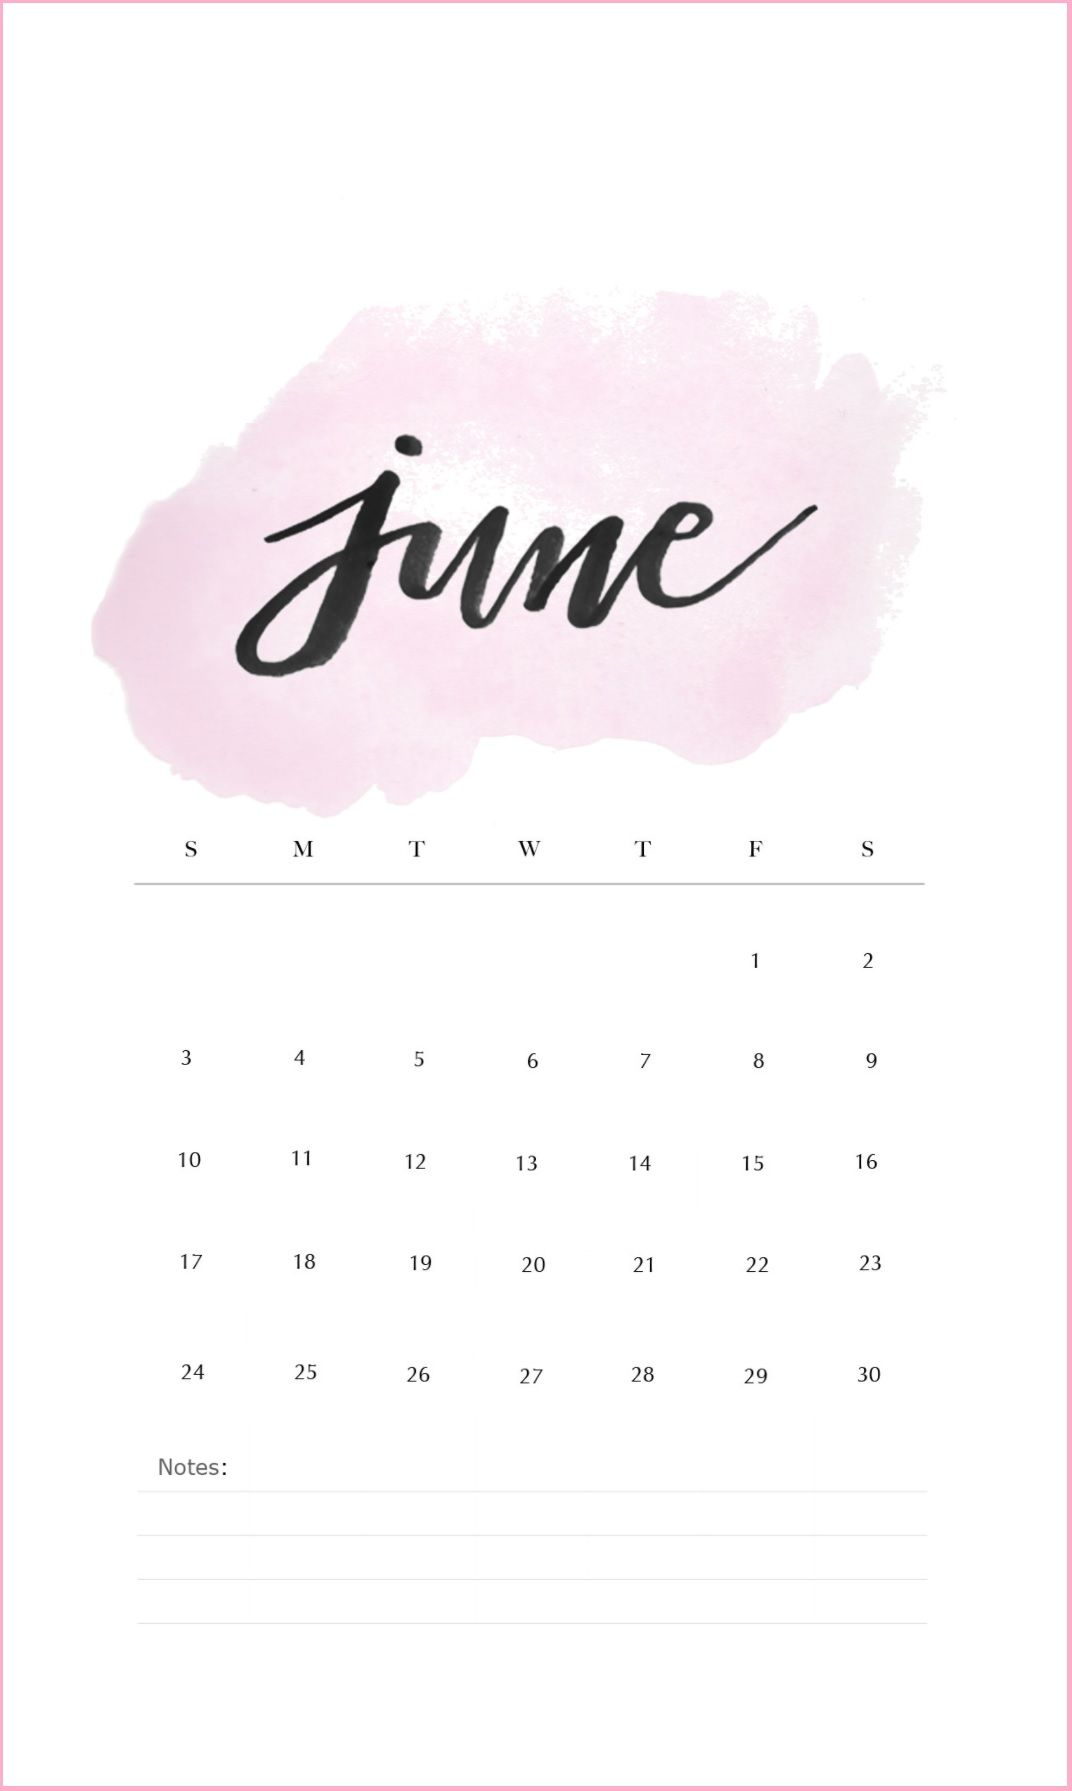 June 2018 Iphone Calendar Wallpaper Calendar Wallpaper June